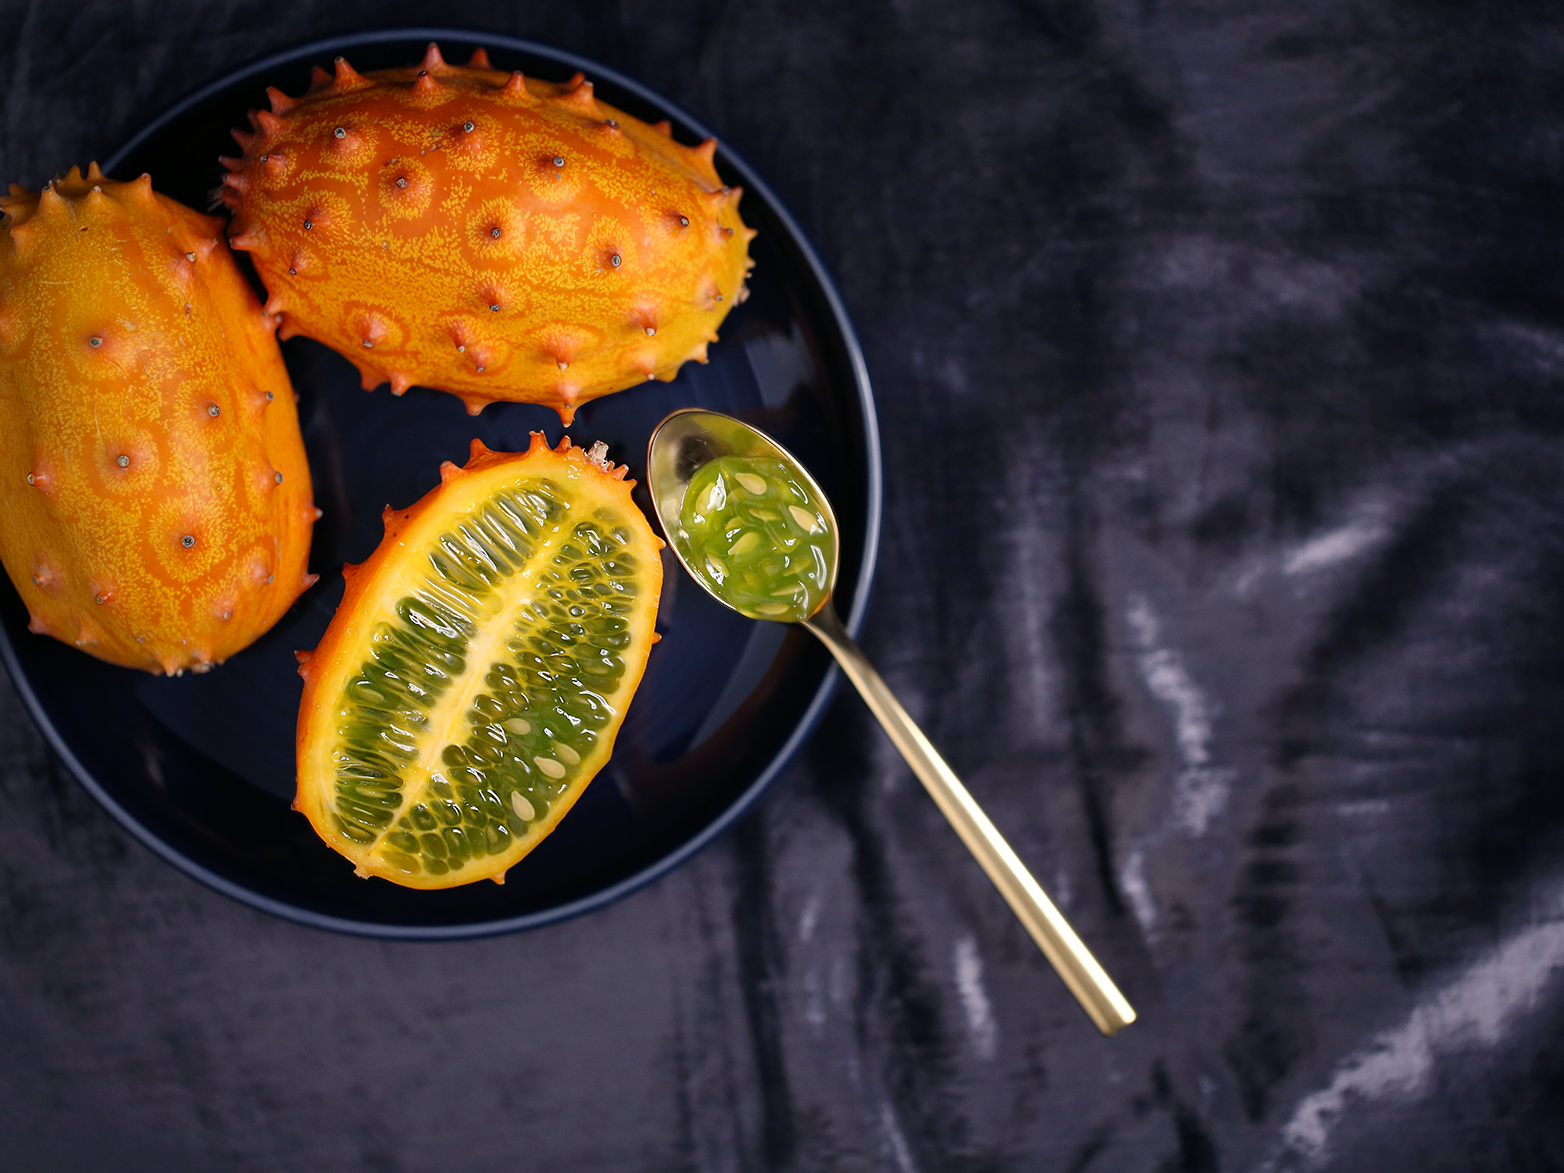 Horned Melon food styling food photography food and drink food color canon 5d mark iii canon 100mm f2.8 adobe photoshop